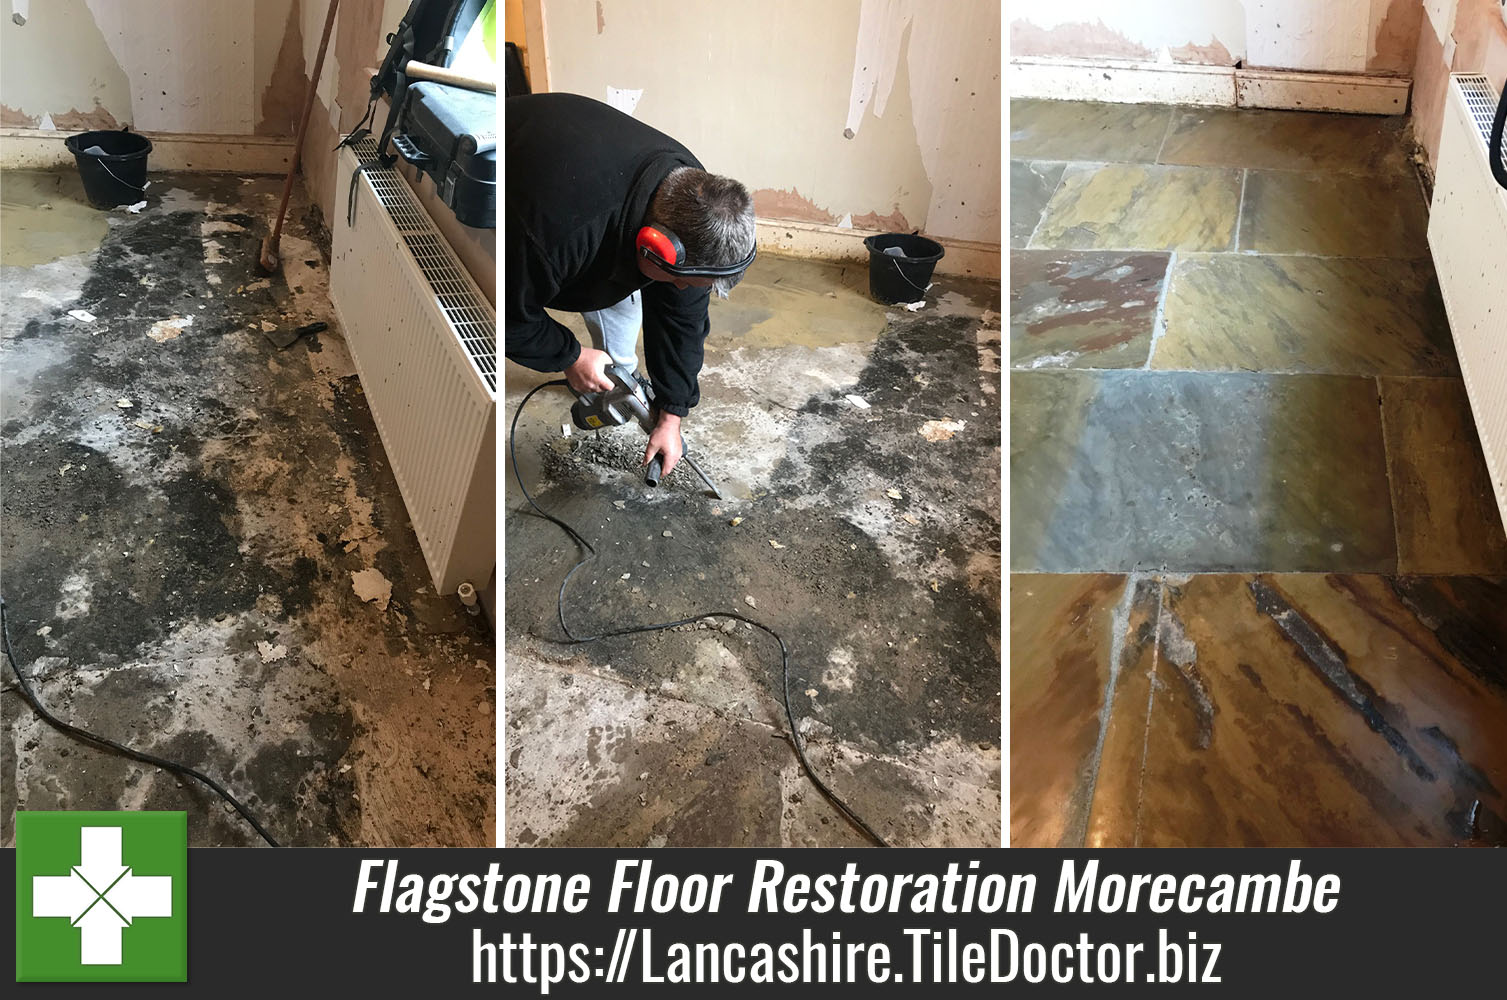 Old Bitumen Covered Flagstone Floor Restored in Morecambe